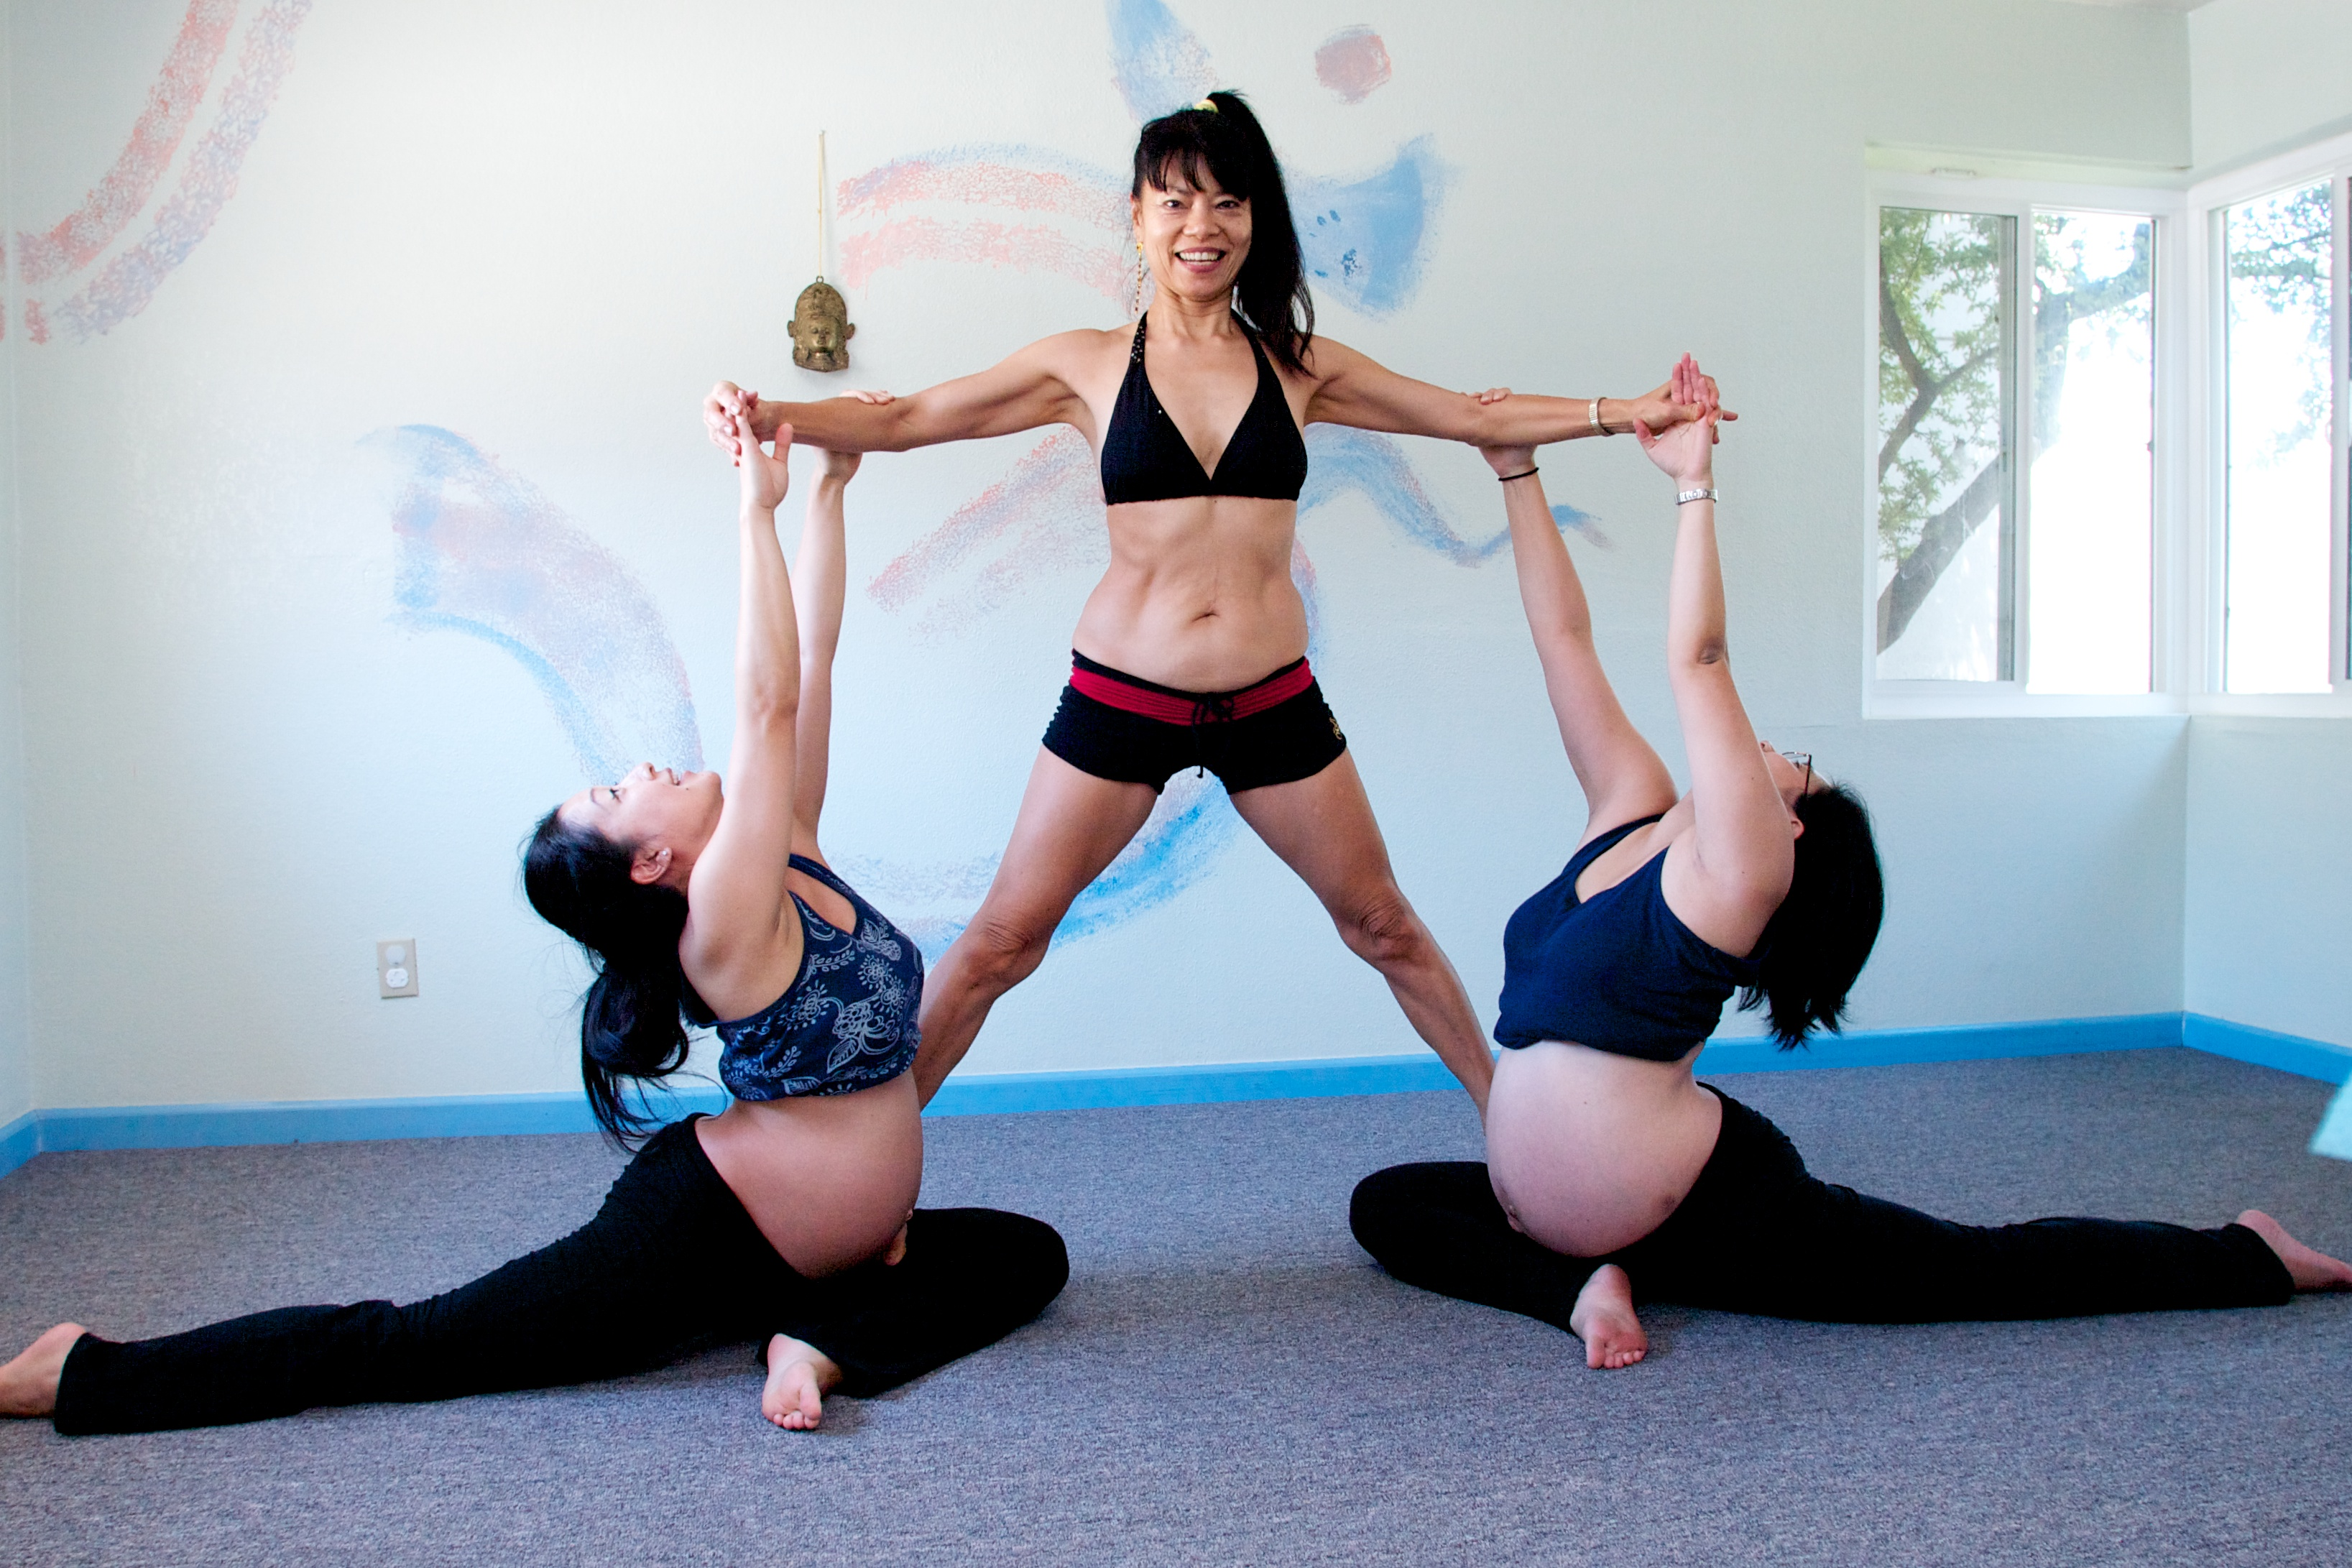 partner yoga poses khaleej mag news and stories from around the